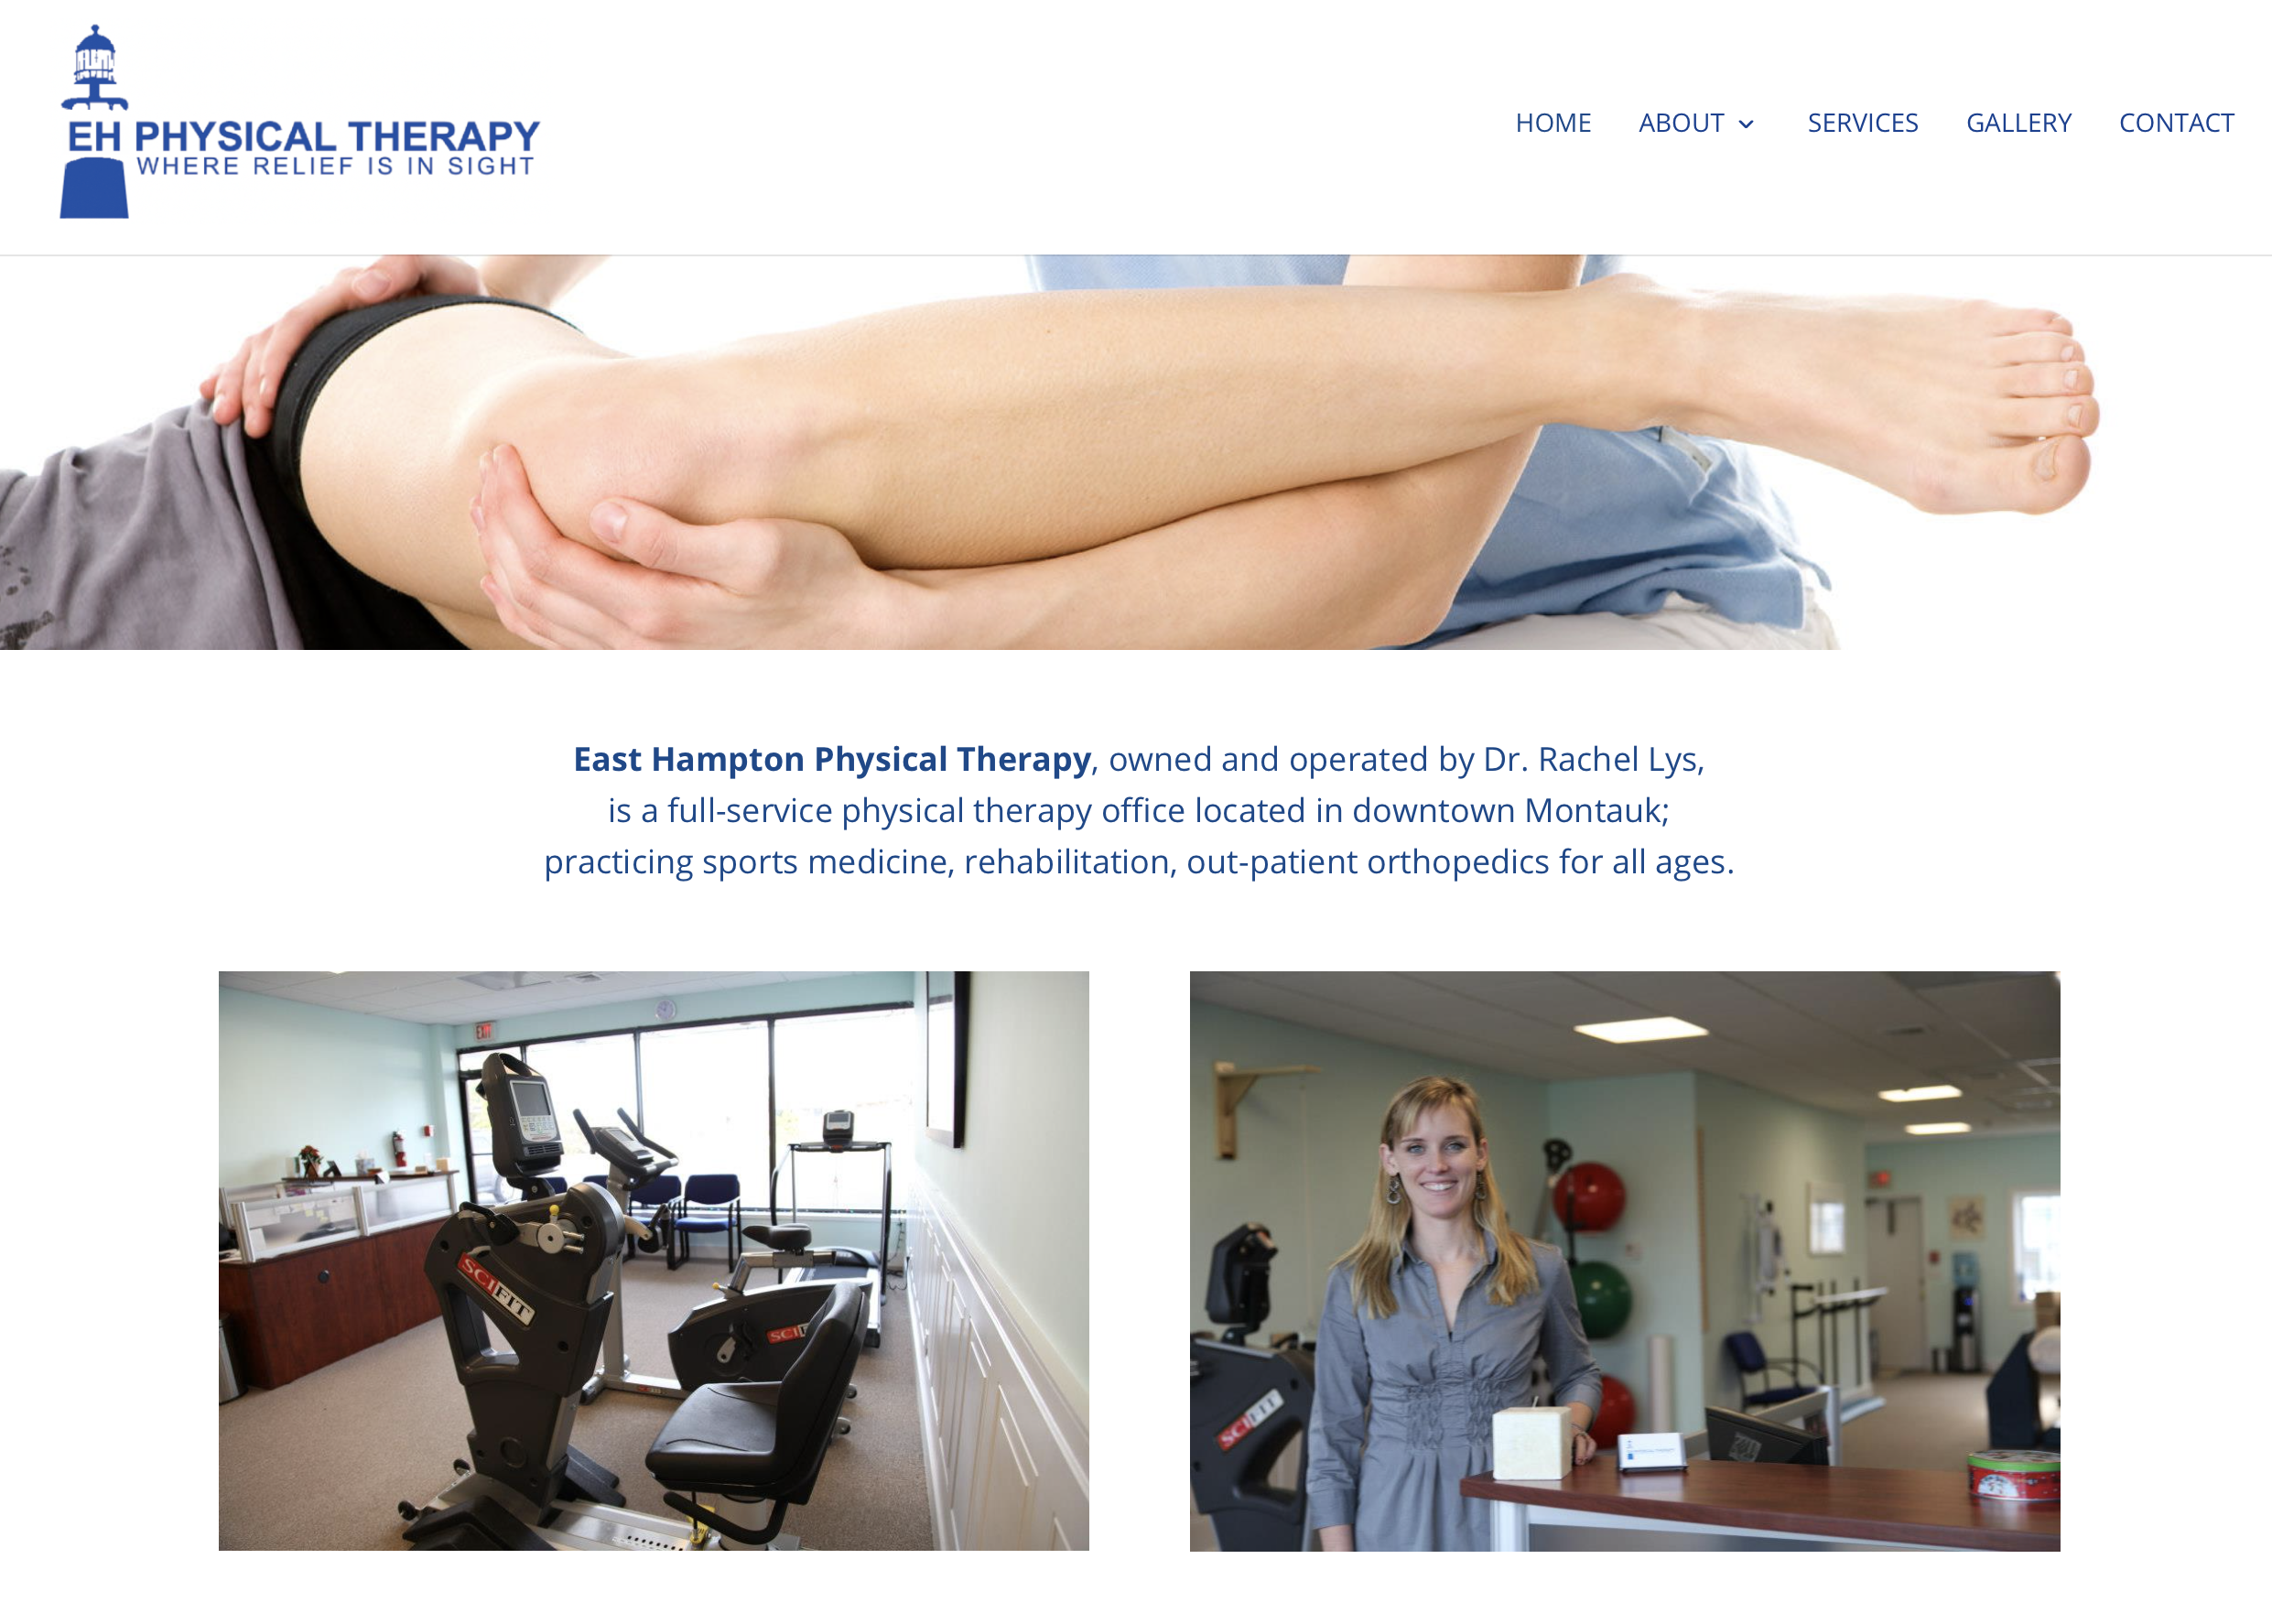 East Hampton Physical Therapy